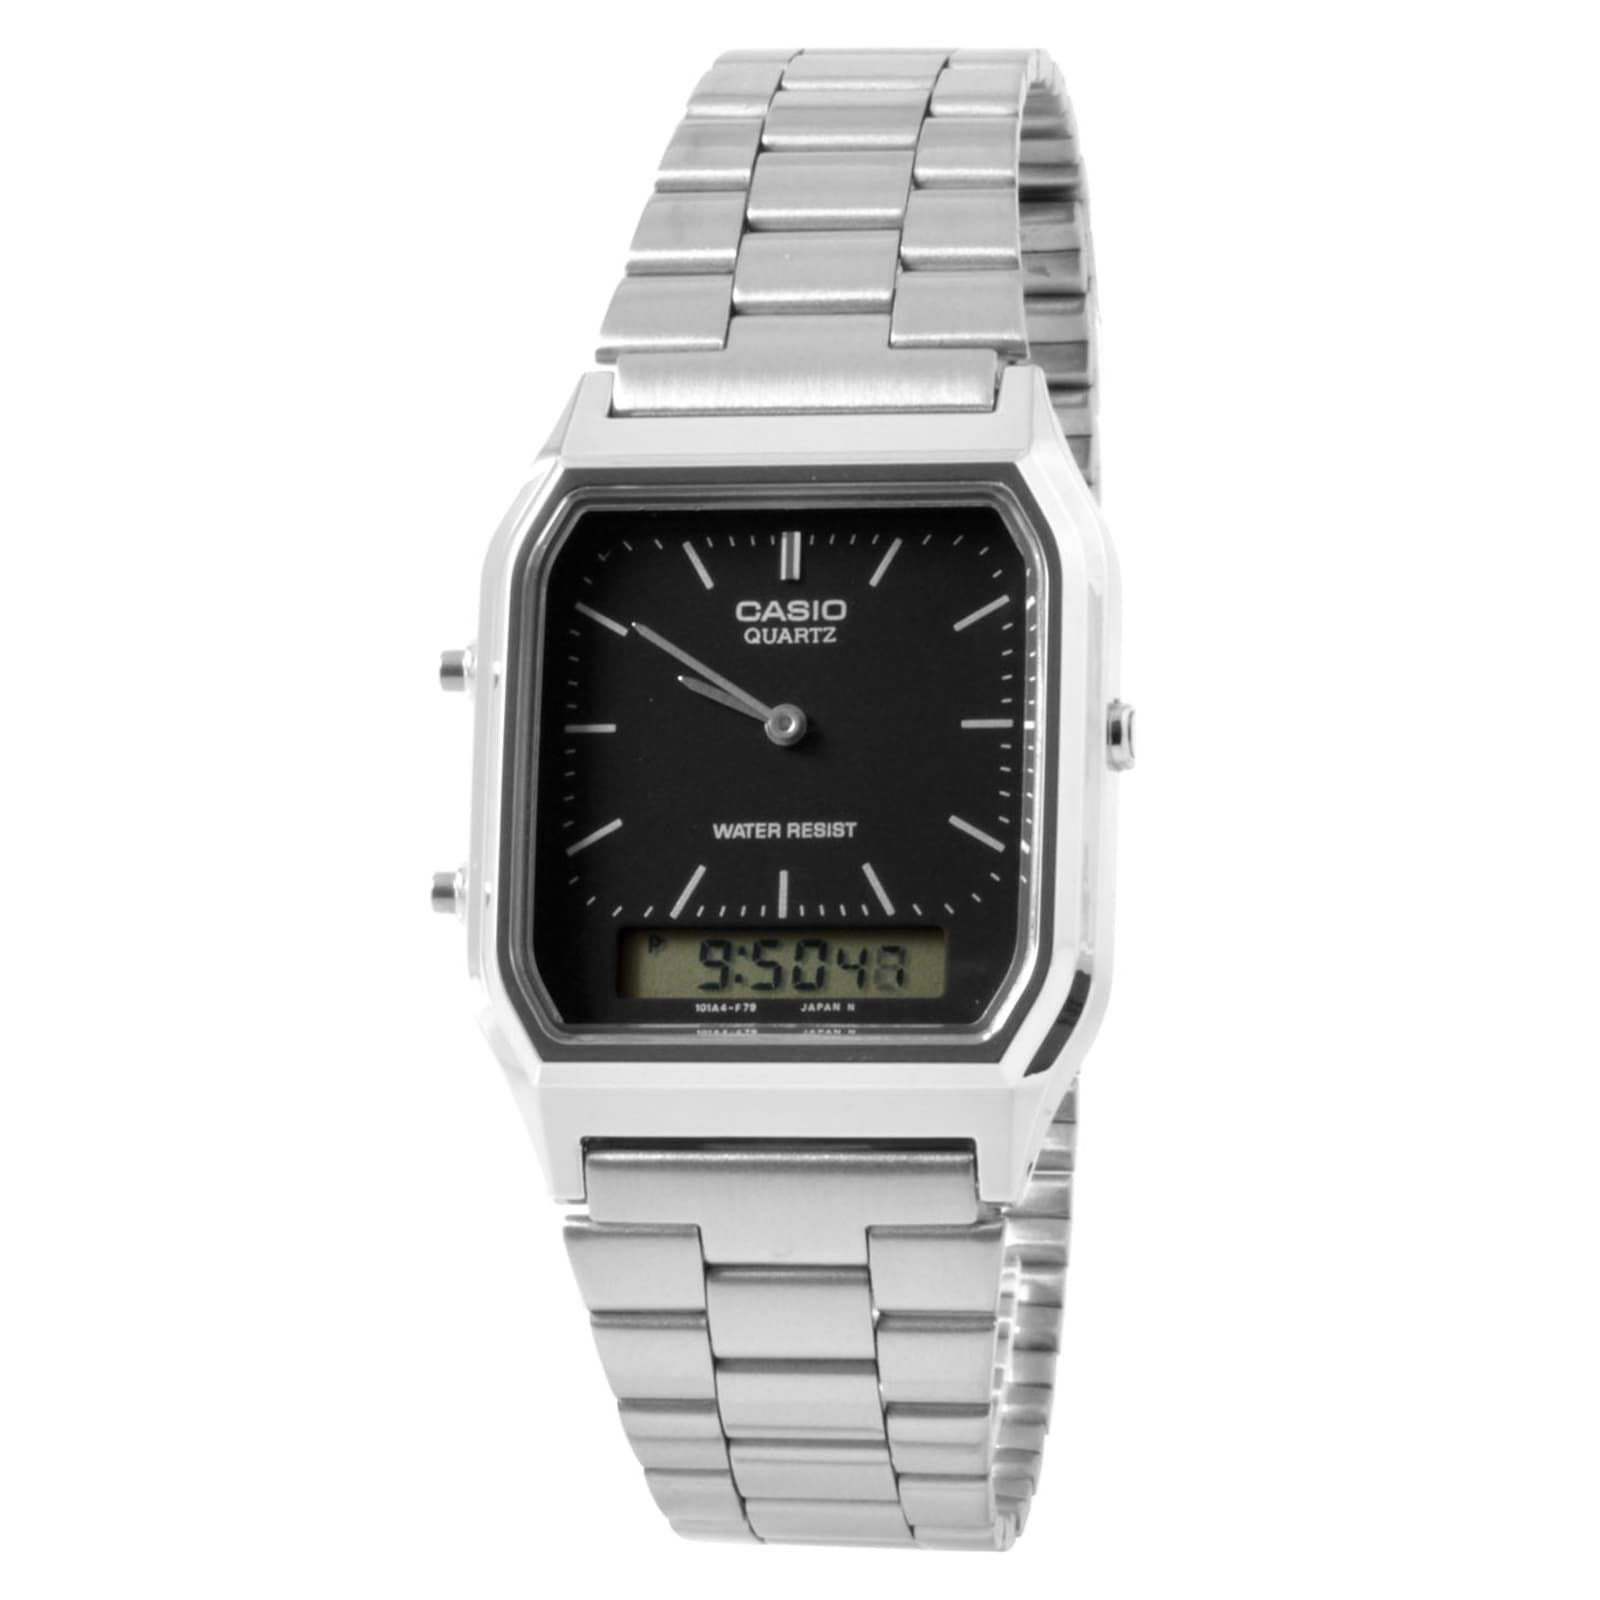 Photo of Stylish Square Black Watch | In stock! | Casio